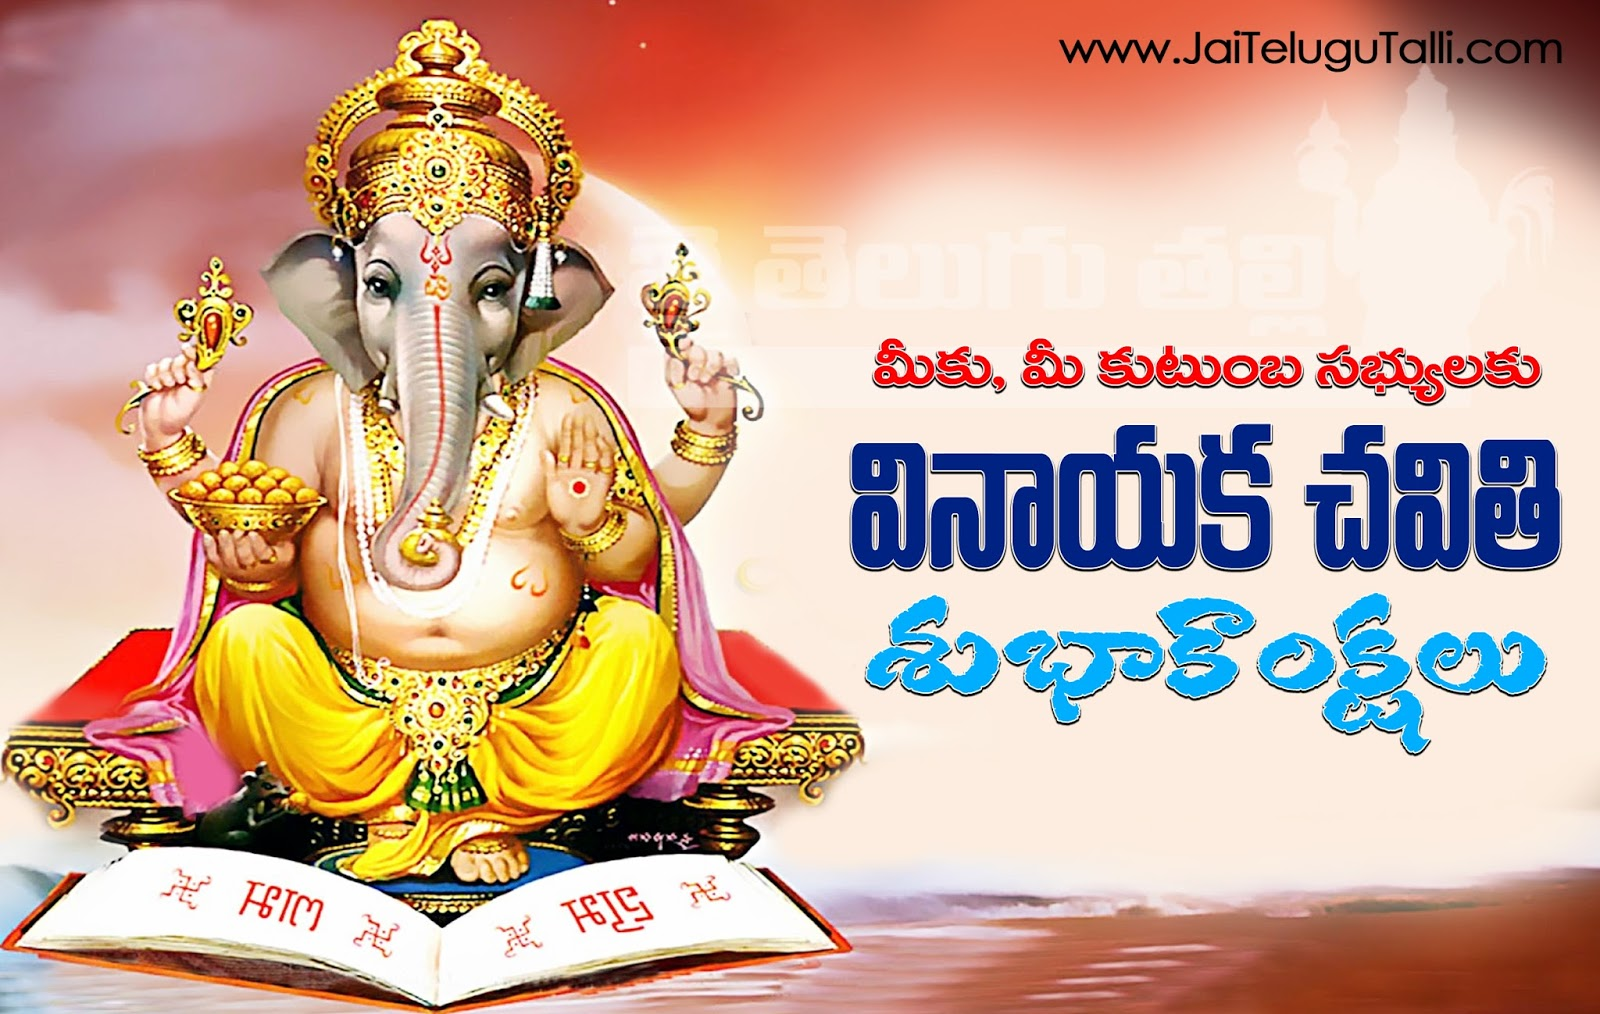 Happy ganesh chaturthi wishes and wallpapers 2015 www happy ganesh chaturthi wishes and wallpapers 2015 m4hsunfo Gallery